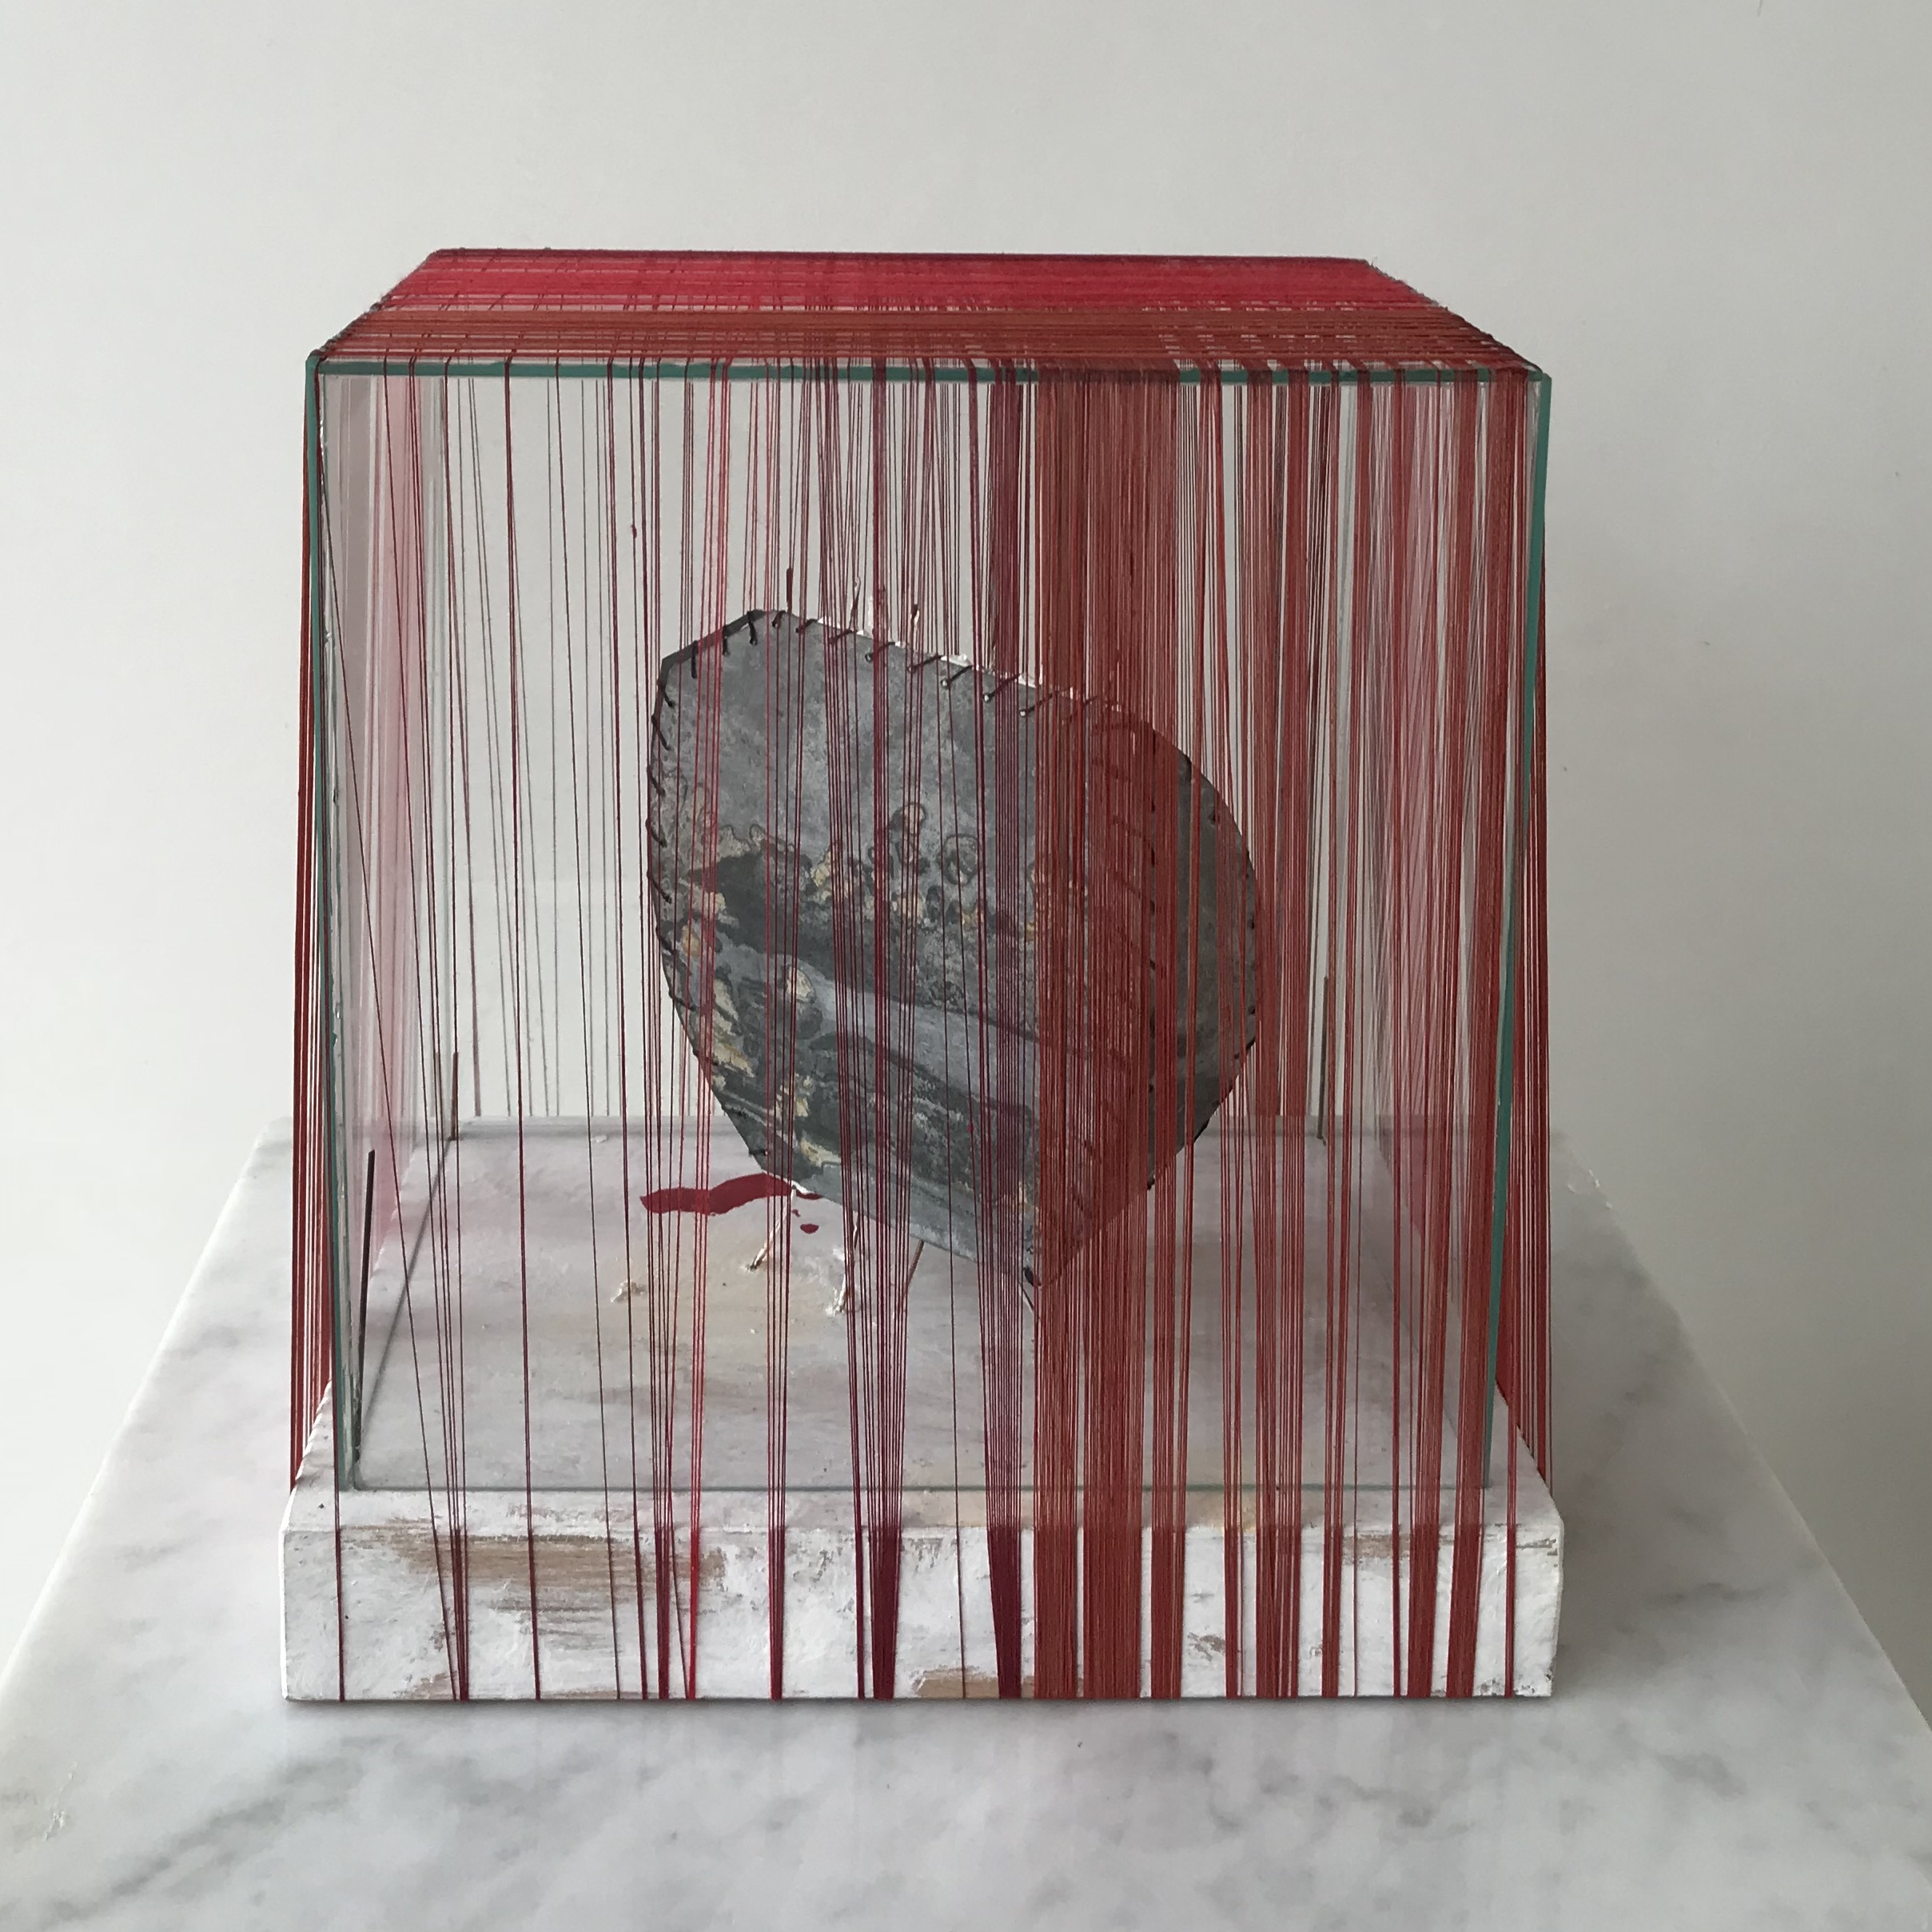 Zinc Root in glass box